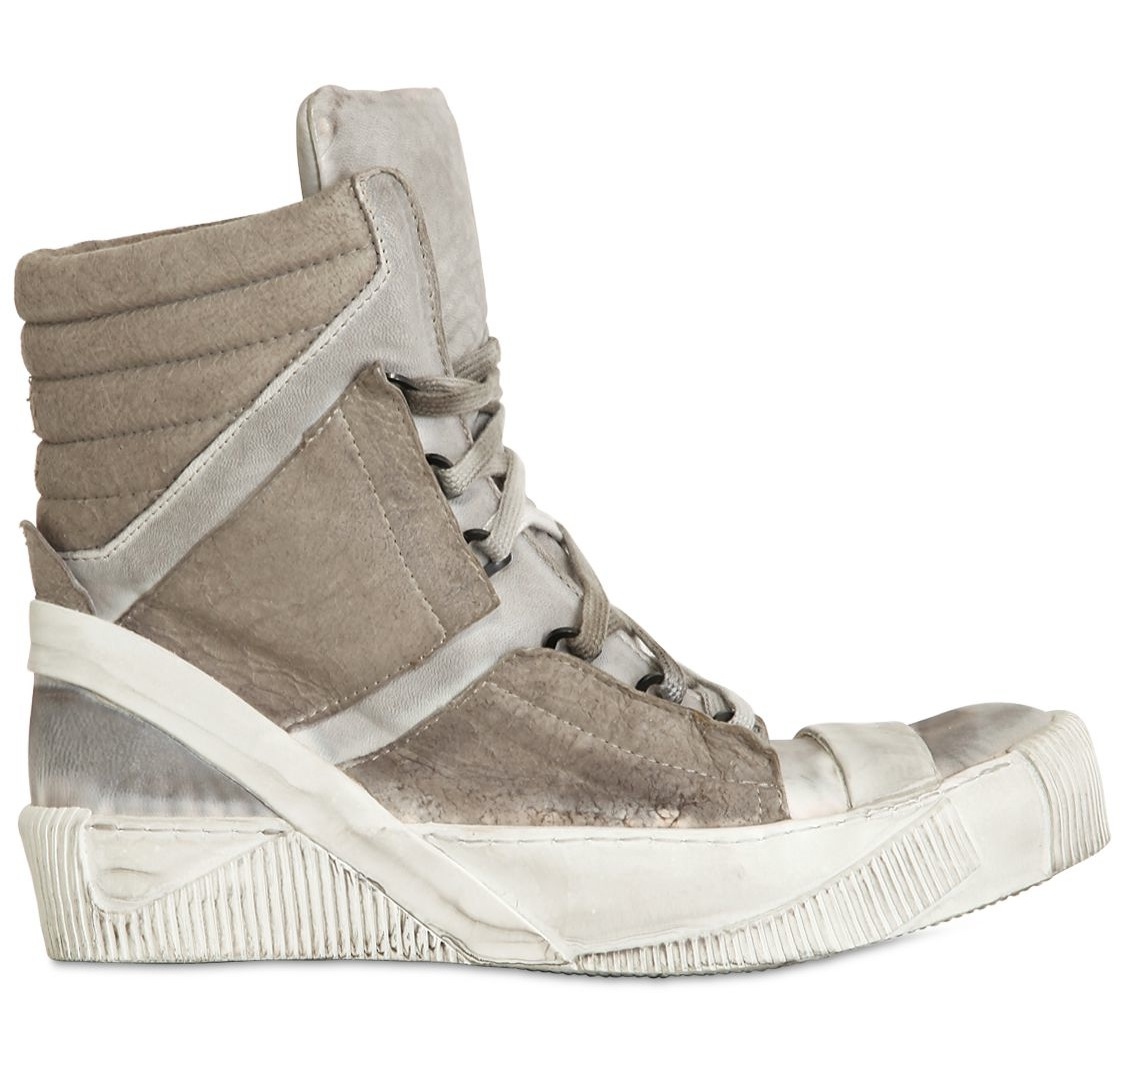 BORIS BIDJAN SABERI  DIRTY NAPPA LEATHER HIGH TOP SNEAKERS